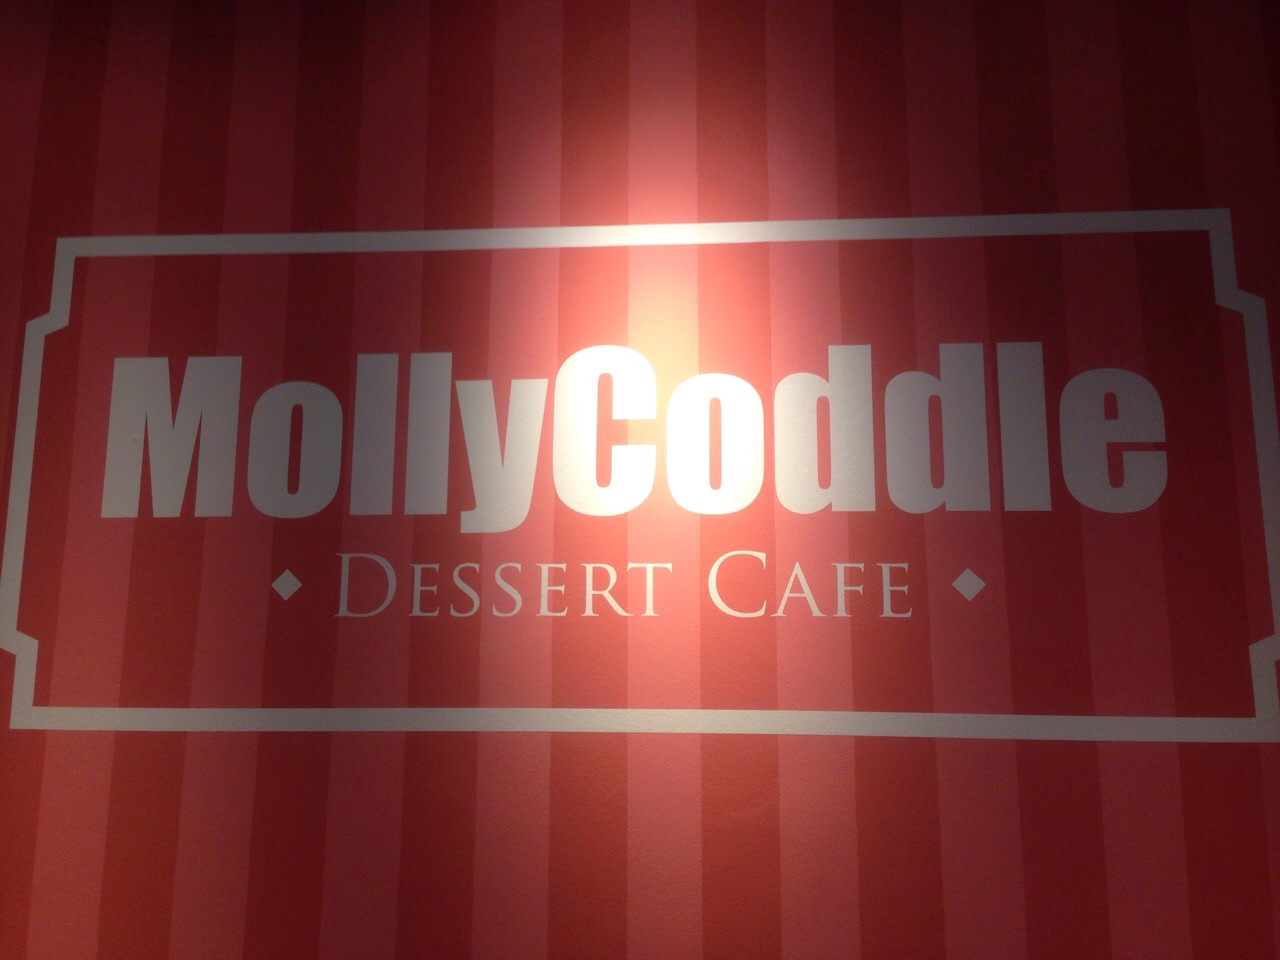 Molly Coddle Cafe